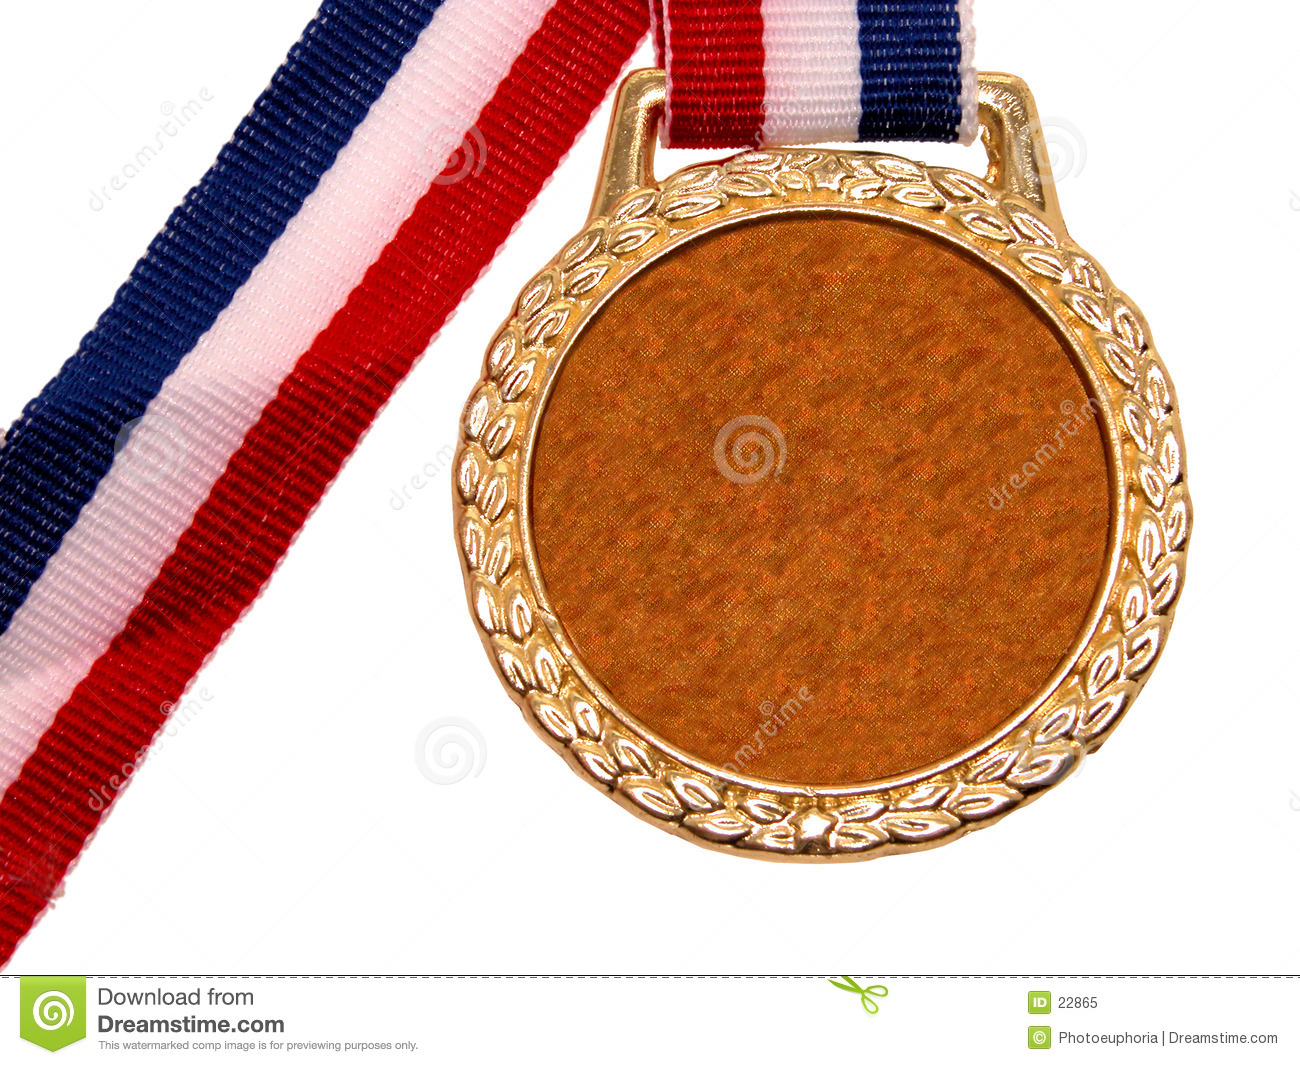 Shiny Gold Medal (1 of 2)